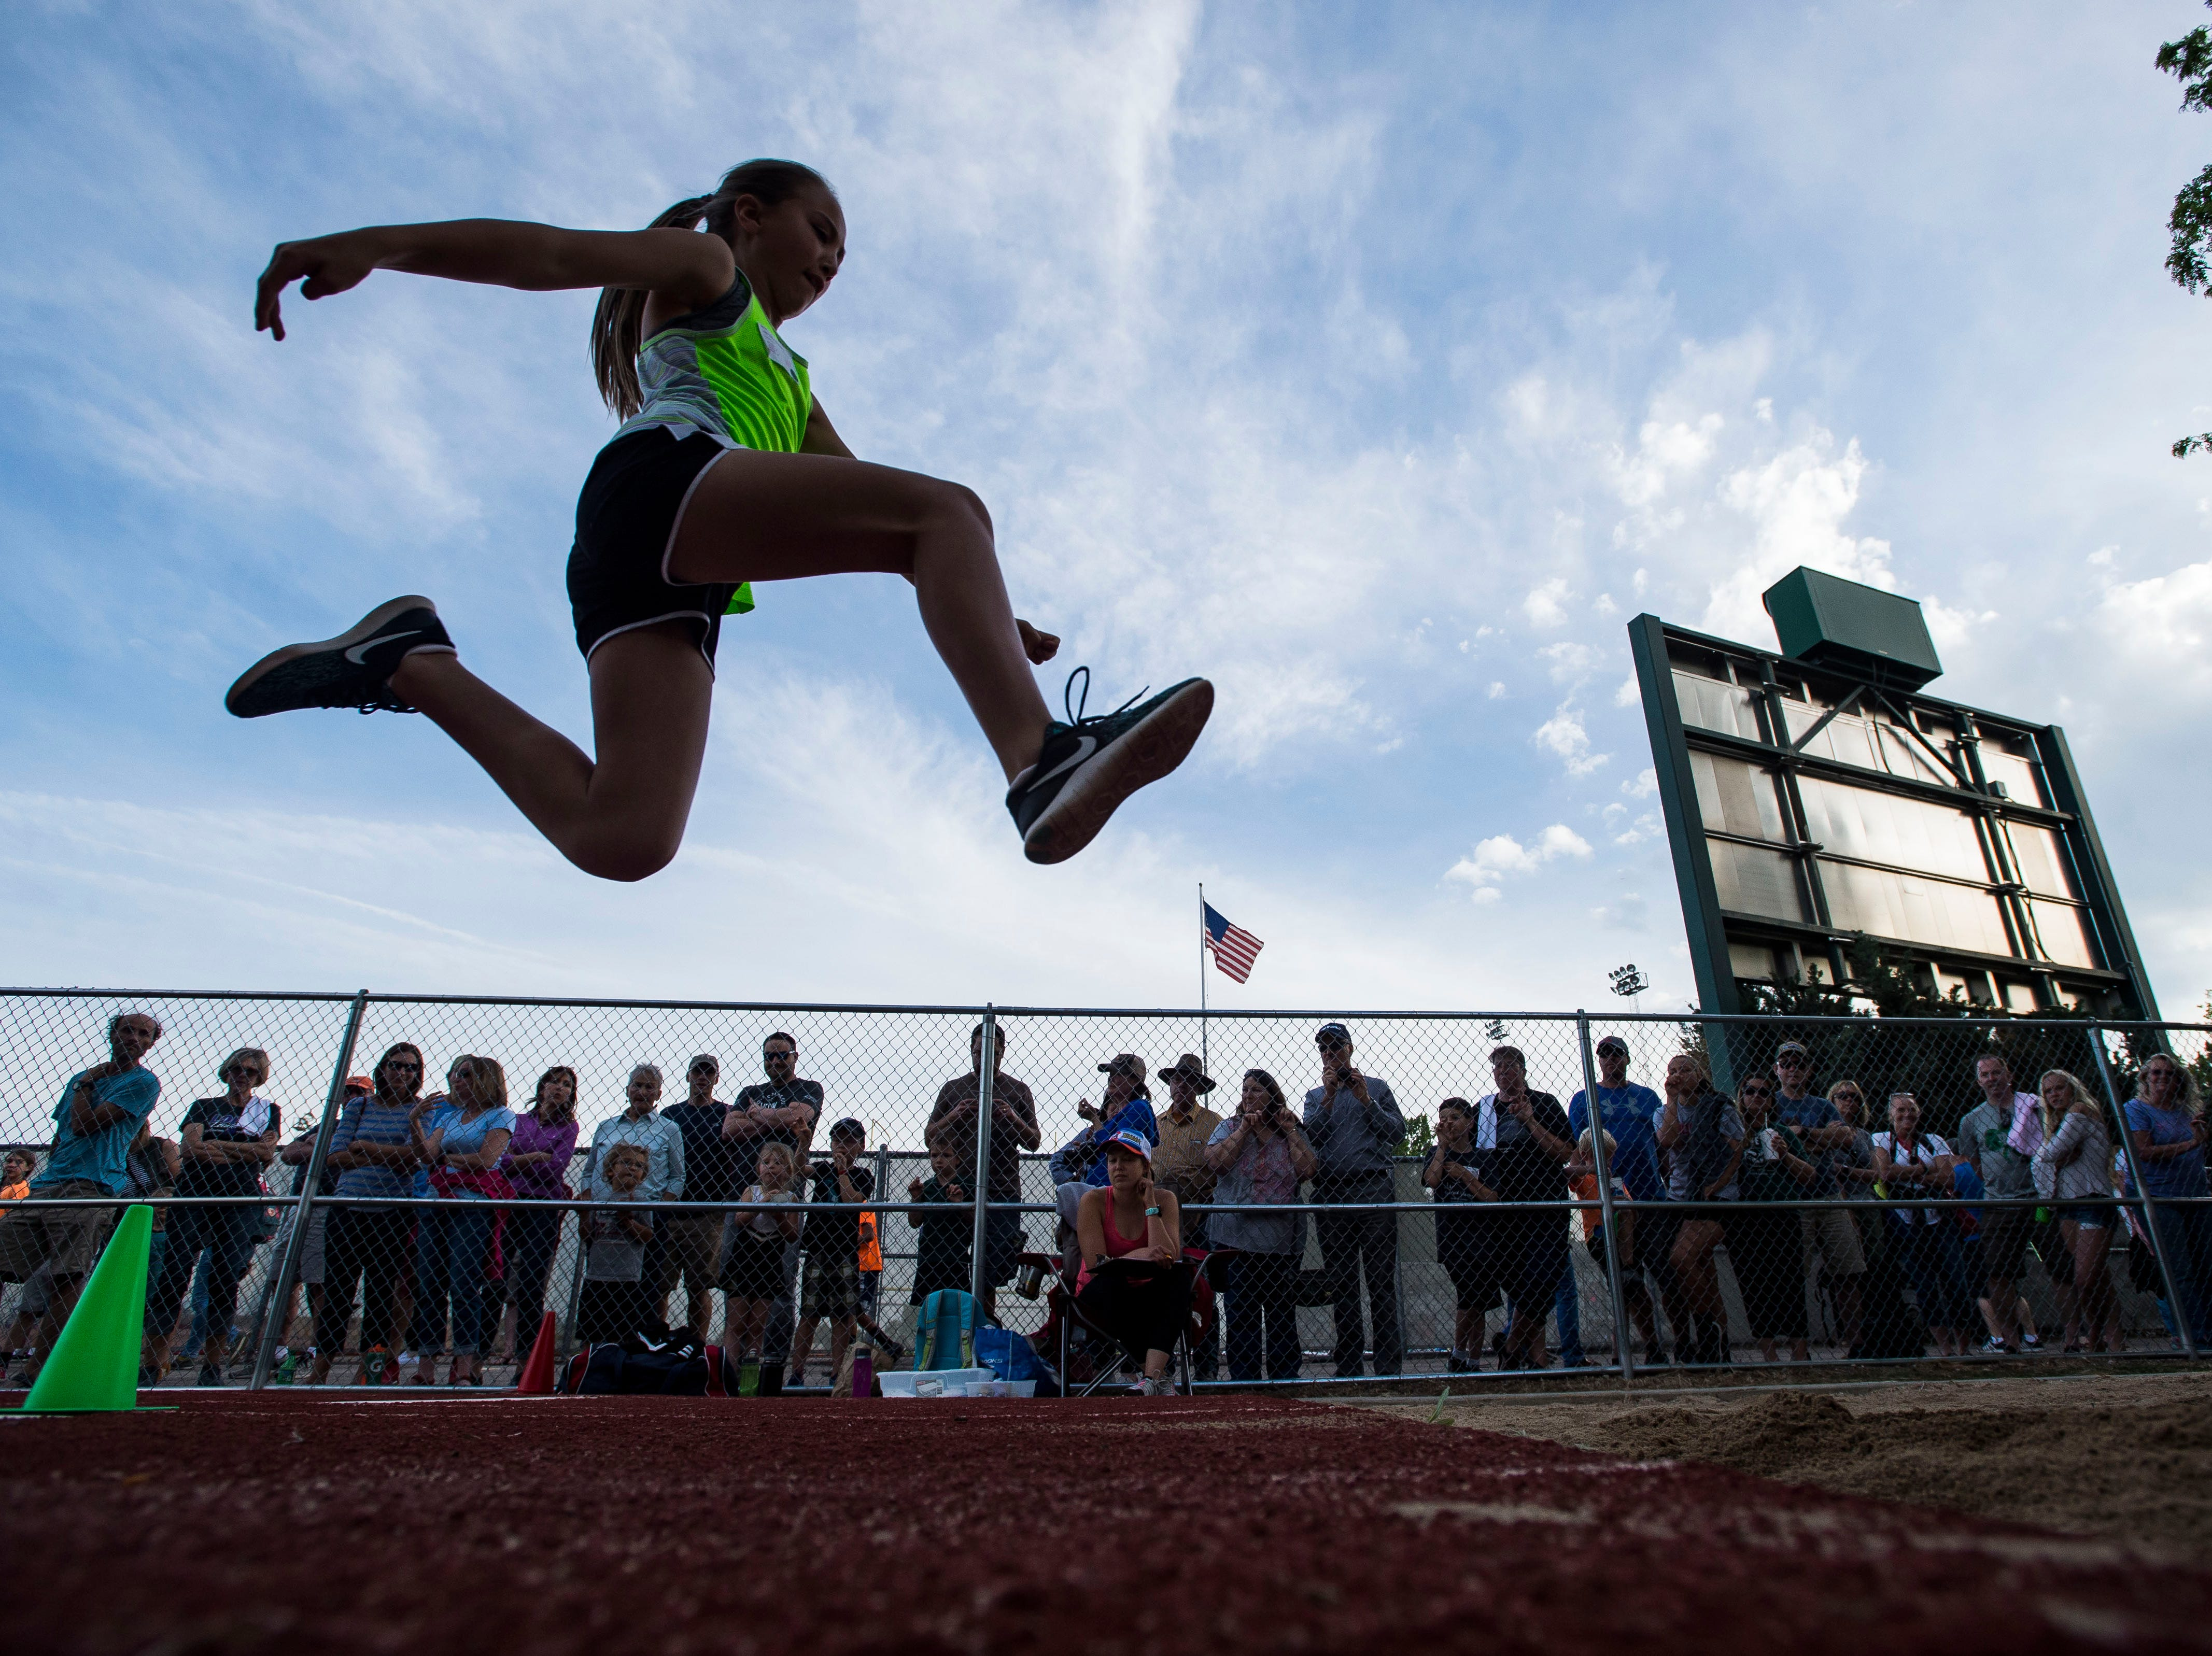 Dunn Elementary School fourth grader Ellia Beauprez competes in the long jump at the Poudre School District Manuel Cordova Elementary Track Meet on Monday, May 21, 2018, at French Field in Fort Collins, Colo.